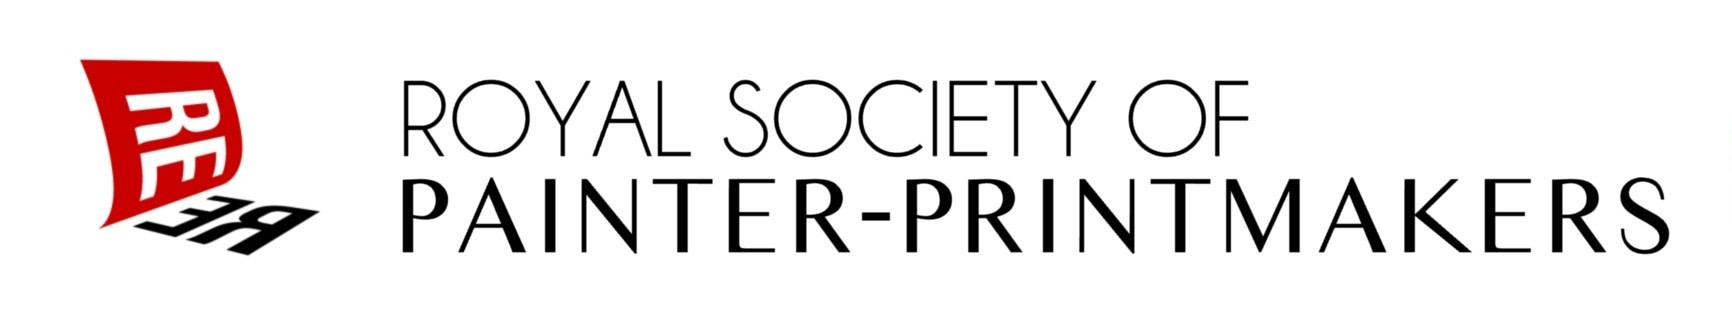 Royal Society of Painter-Printmakers Prize